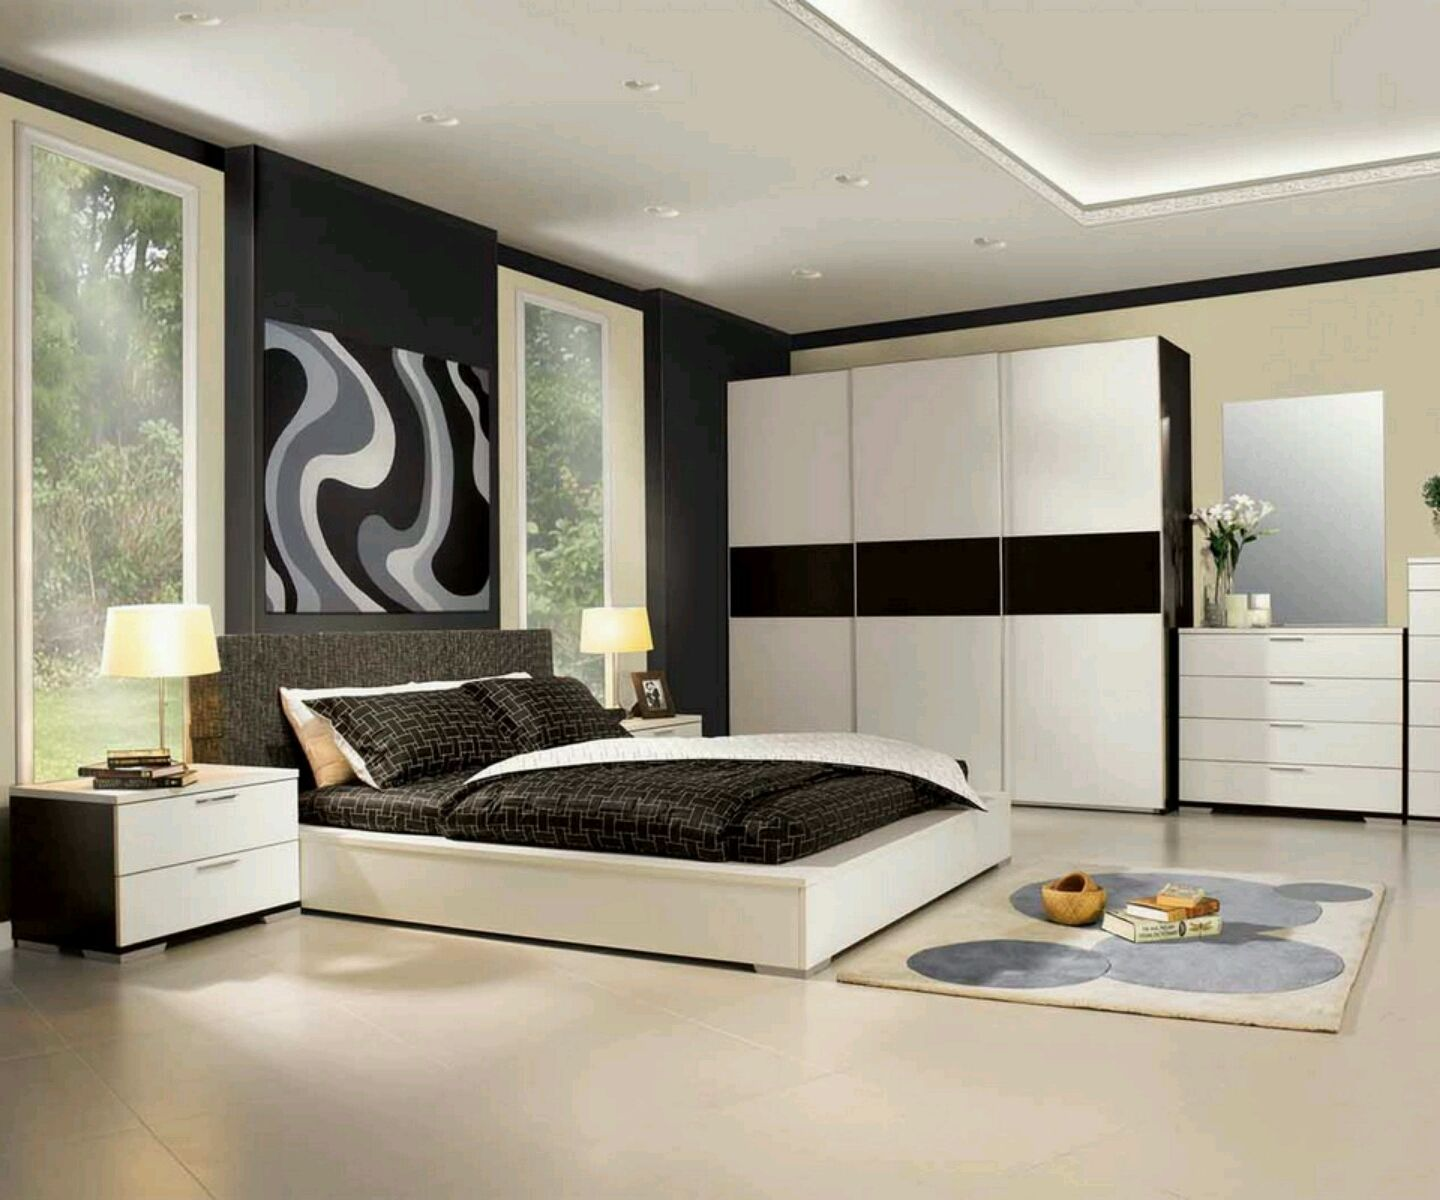 Modern Bedroom Furniture Design For More Pictures And Design Ideas, Please  Visit My Blog Http://pesonashop.com